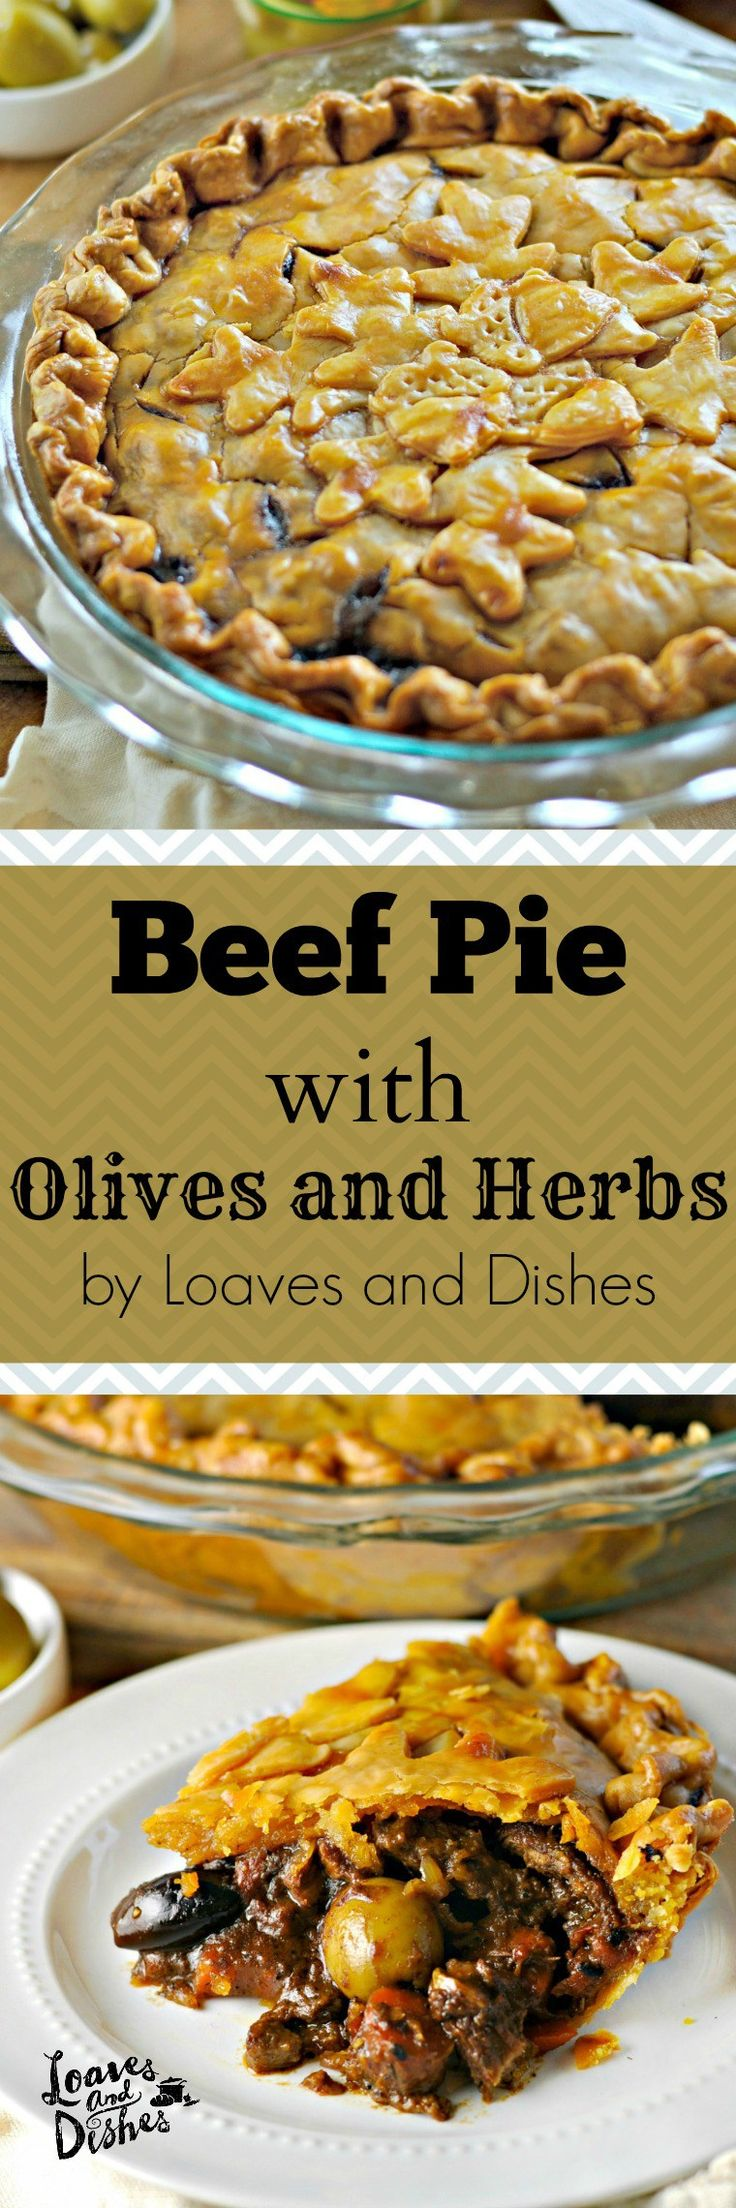 Beef Pie with Olives & Herbs — What is better than snuggling up with a piping hot plate of beef pie on a cold day? This, my friend, is a recipe you can lose yourself in. I suggest this for a cold Sunday afternoon while everyone is vegging out in the living room!